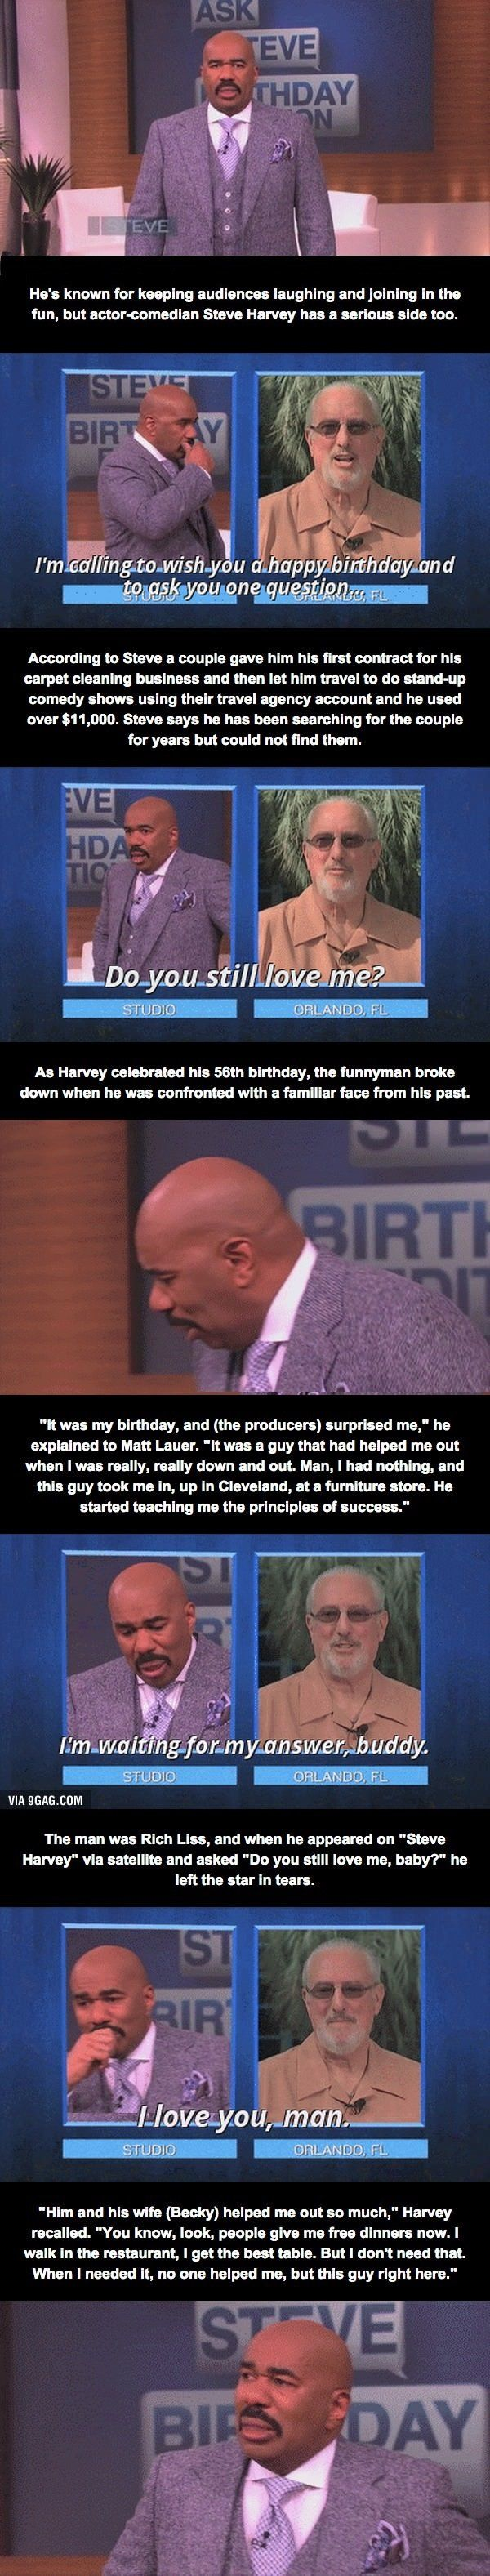 Steve Harvey Funny Pictures Funny Photos Funny Images Funny Pics Funny Quotes Lol Faith In Humanity Humanity Restored Faith In Humanity Restored